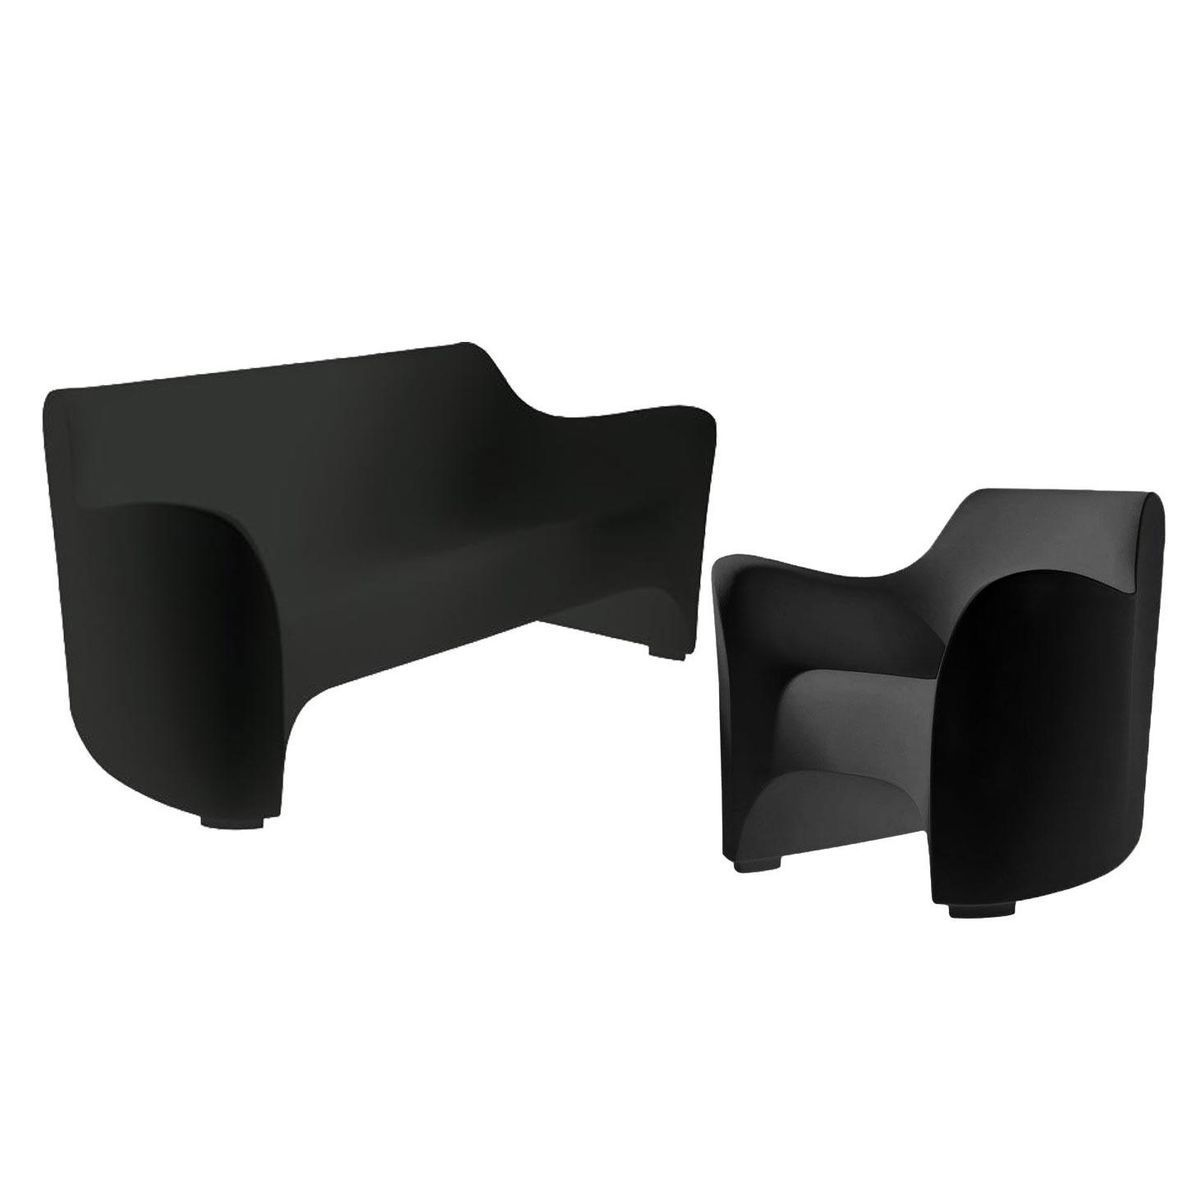 set promo tokyo pop canap et fauteuil driade. Black Bedroom Furniture Sets. Home Design Ideas